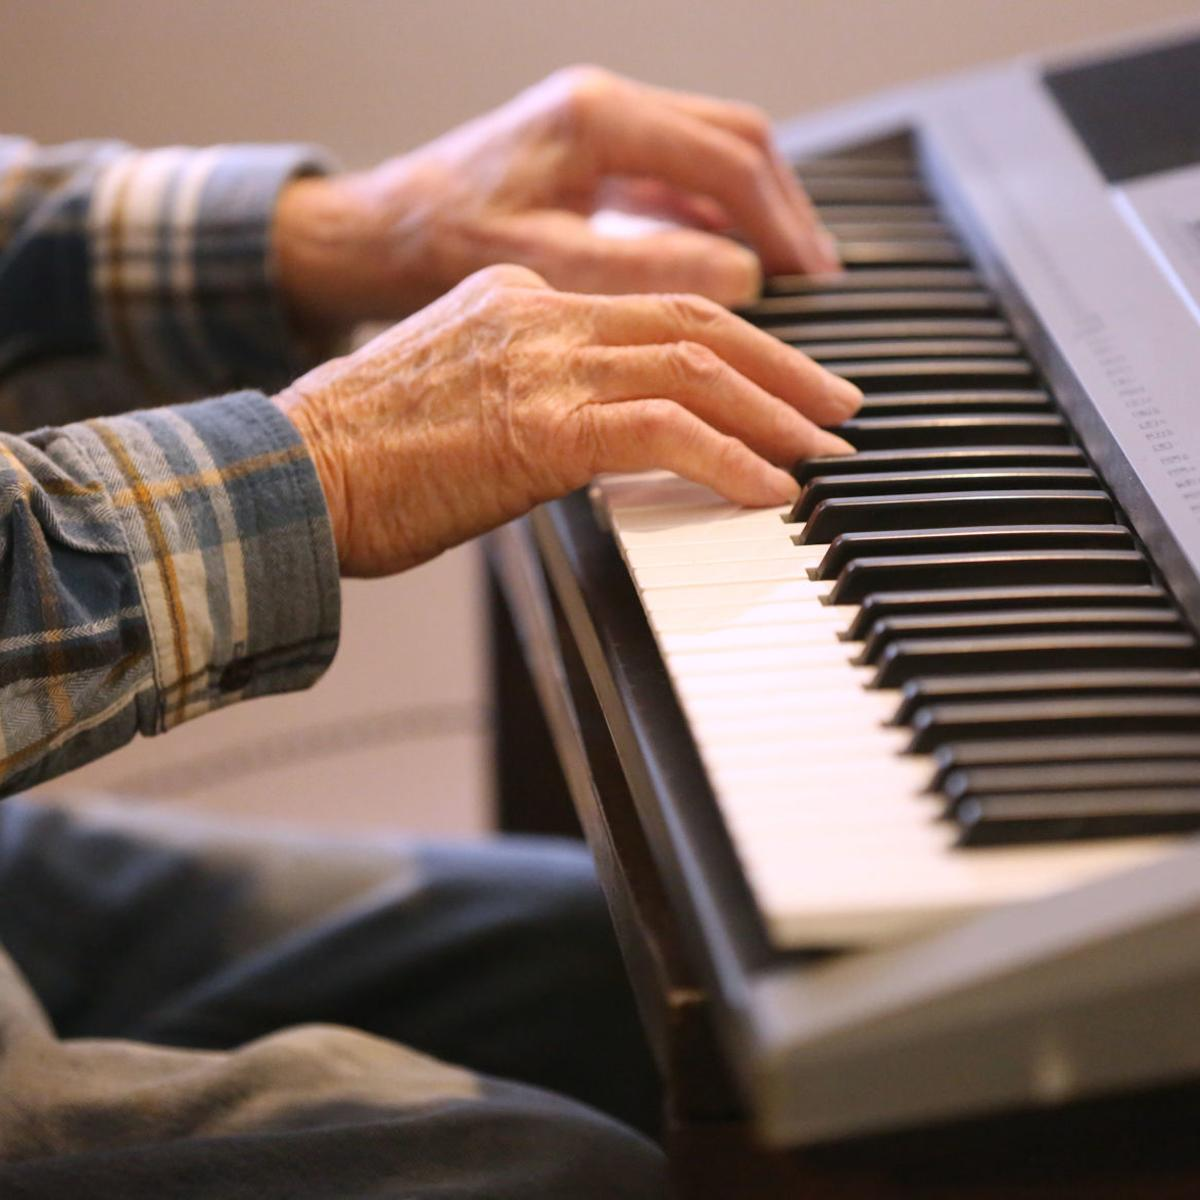 At age 93, piano man says he loves playing for 'old people' | Nebraska News  | journalstar.com